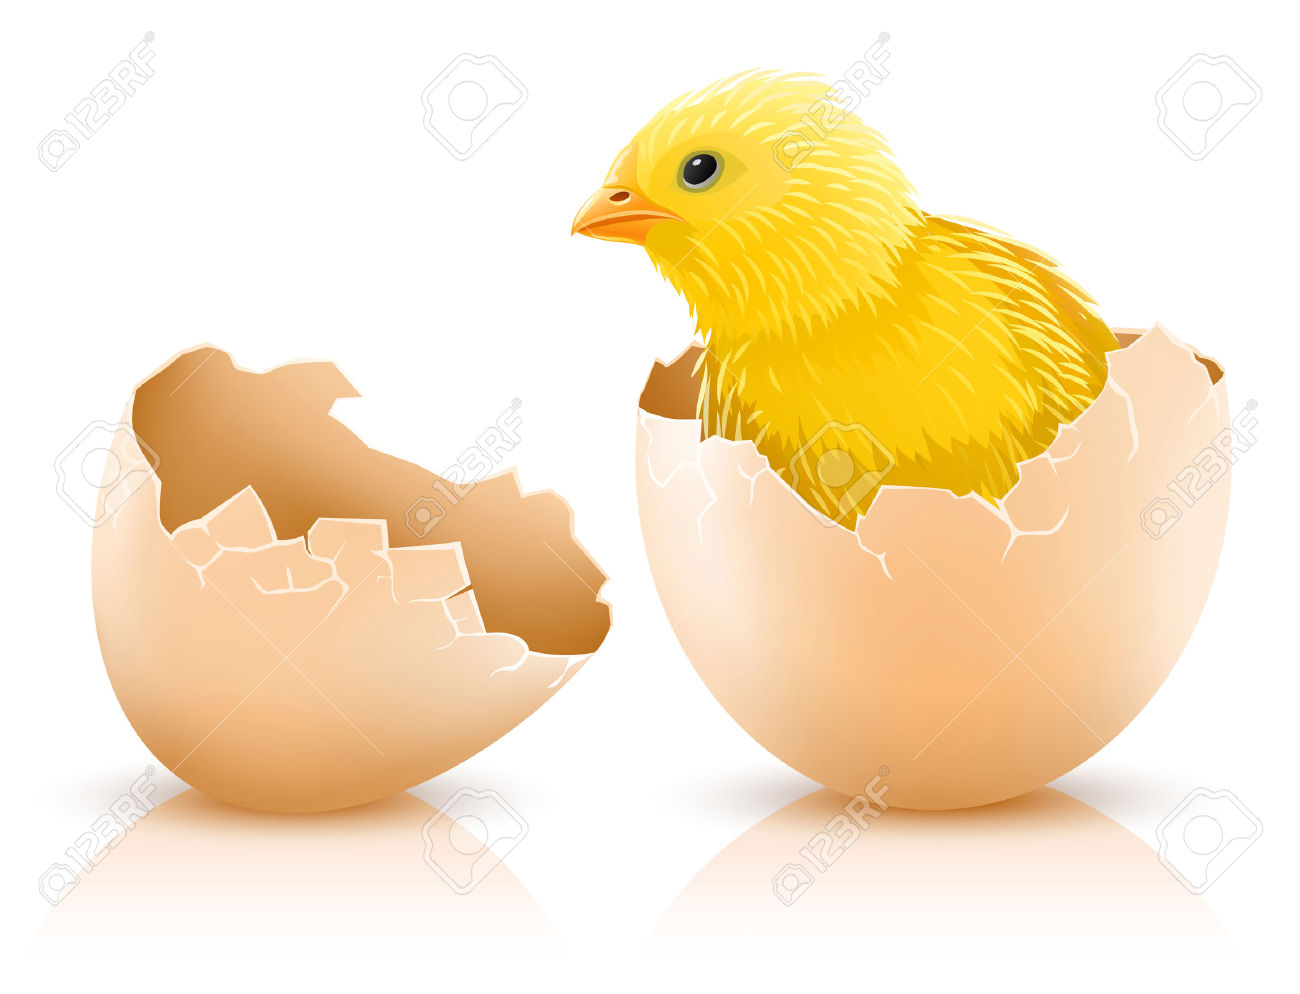 Baby Chicken Quotes: Chicken Leaving Cracked Egg Funny Clipart Image